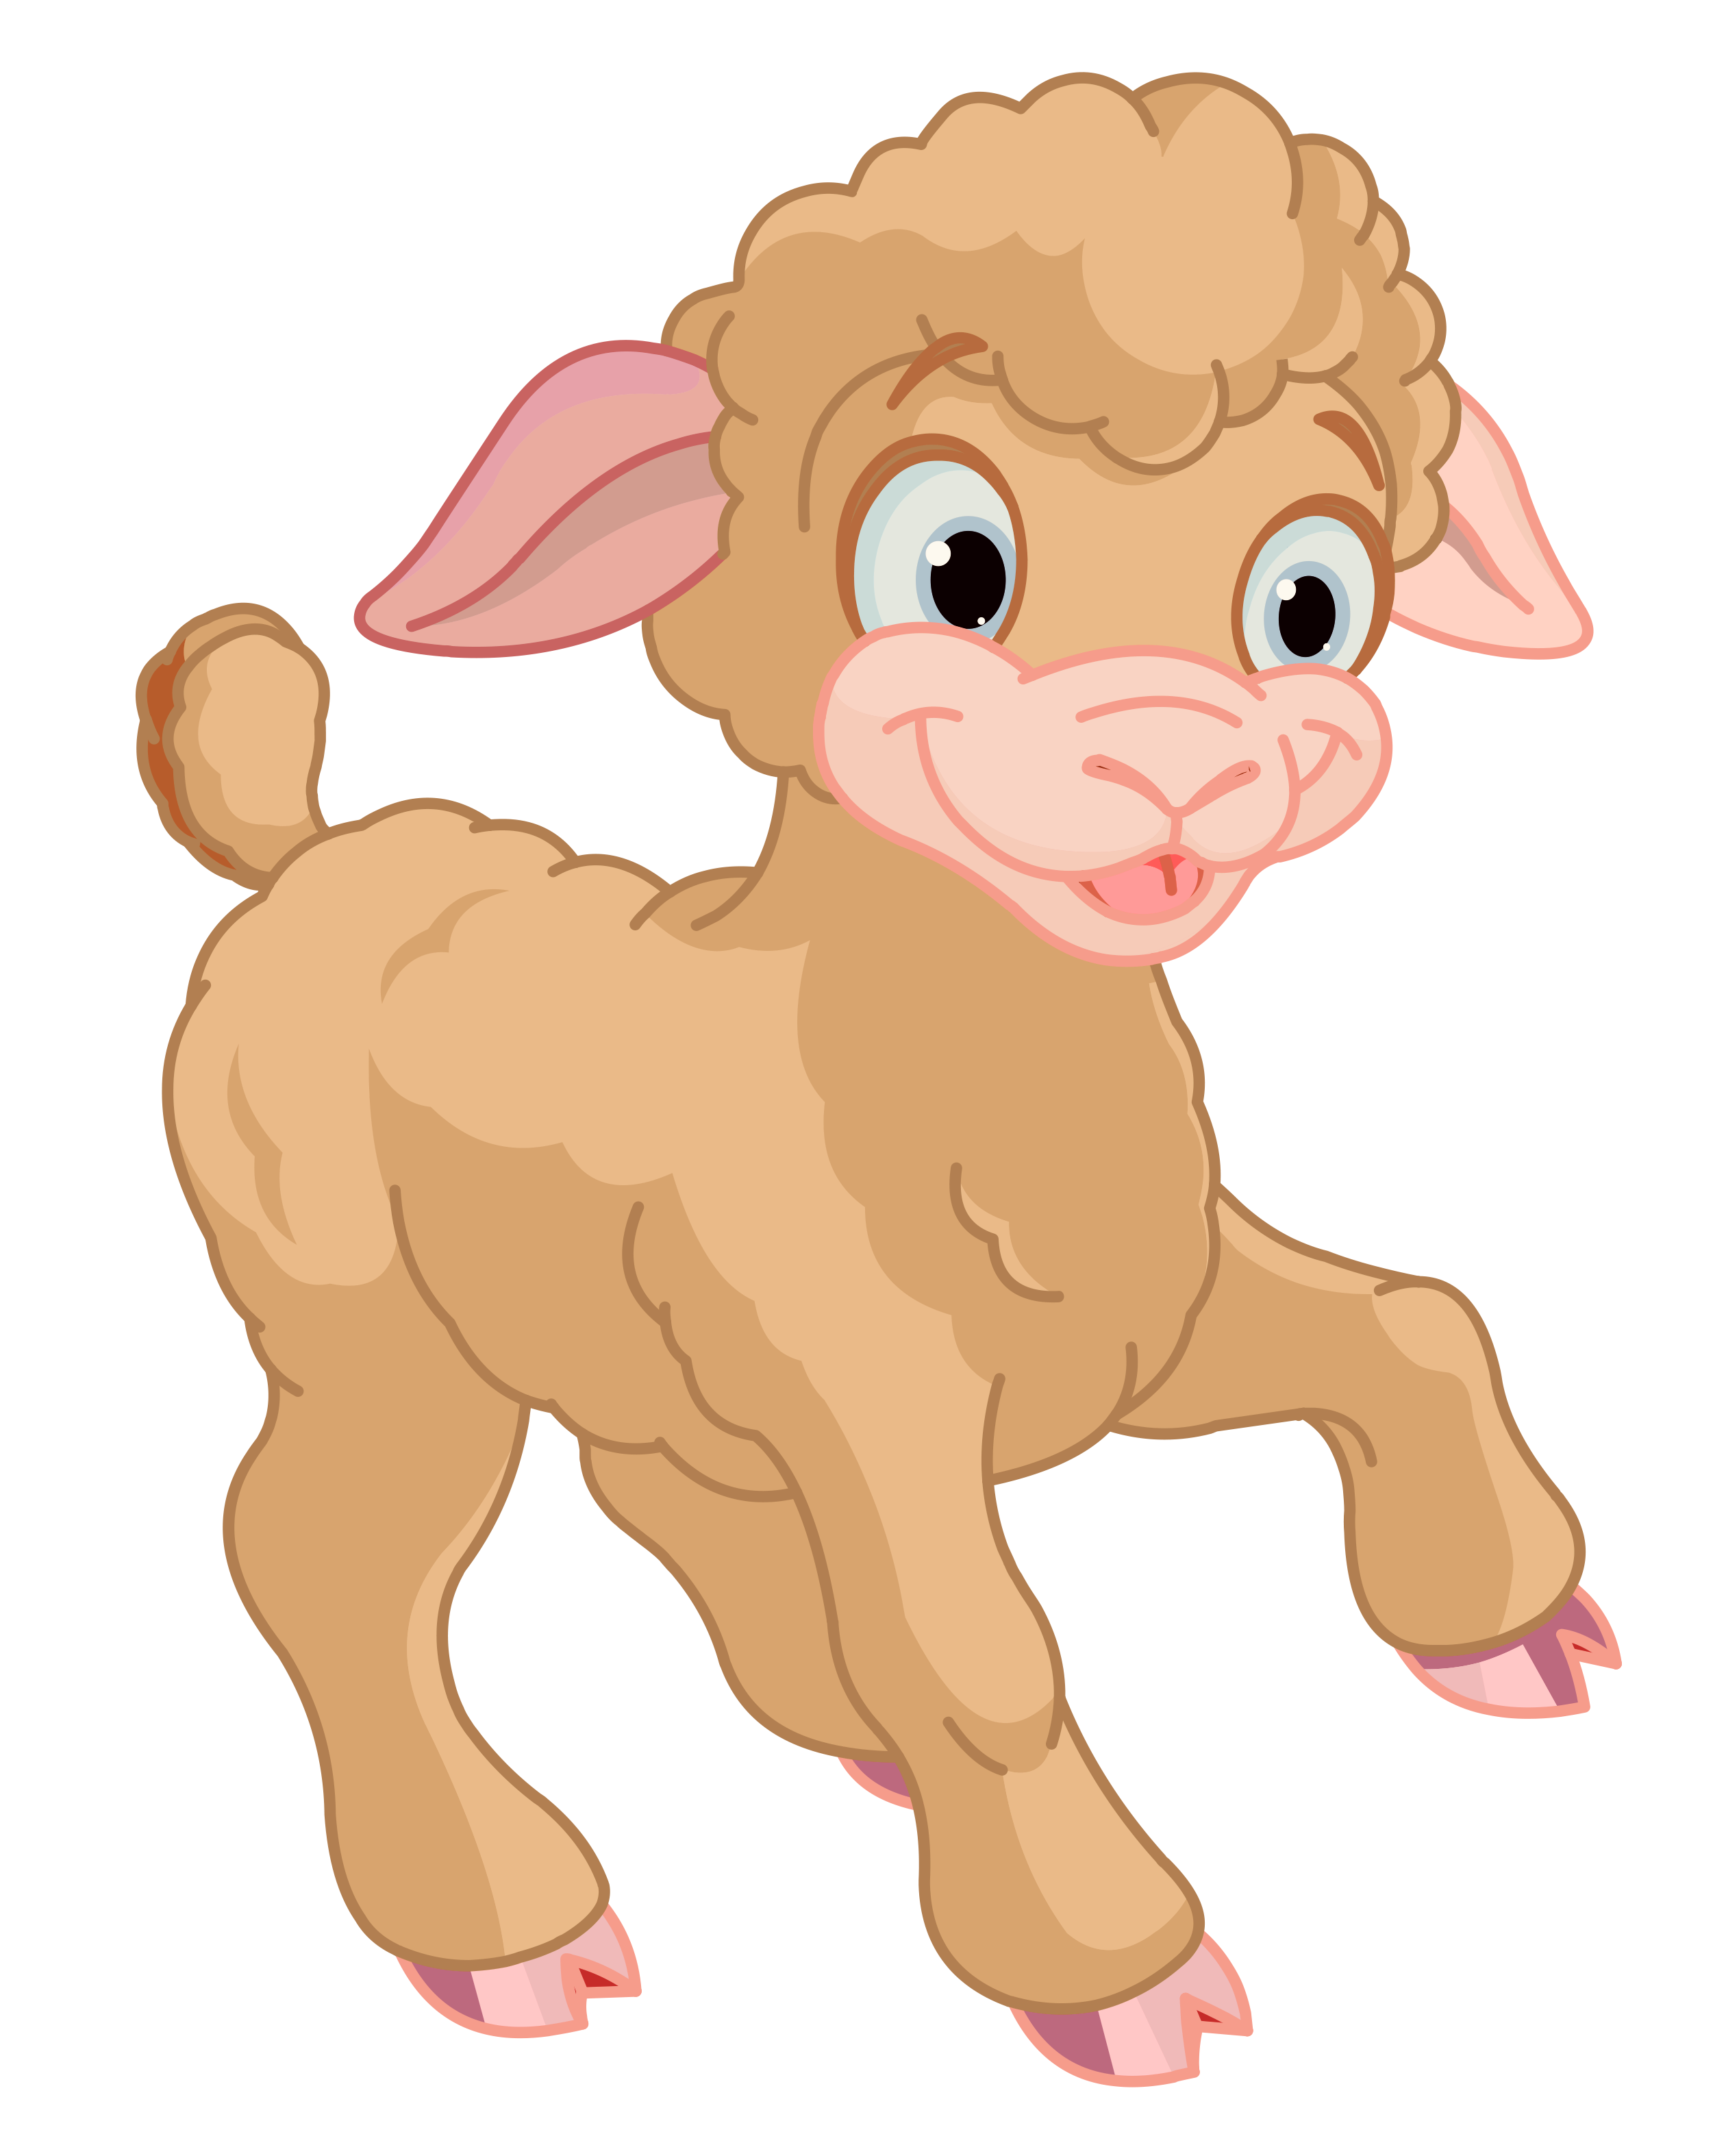 Lamb clipart png. Cute little gallery yopriceville